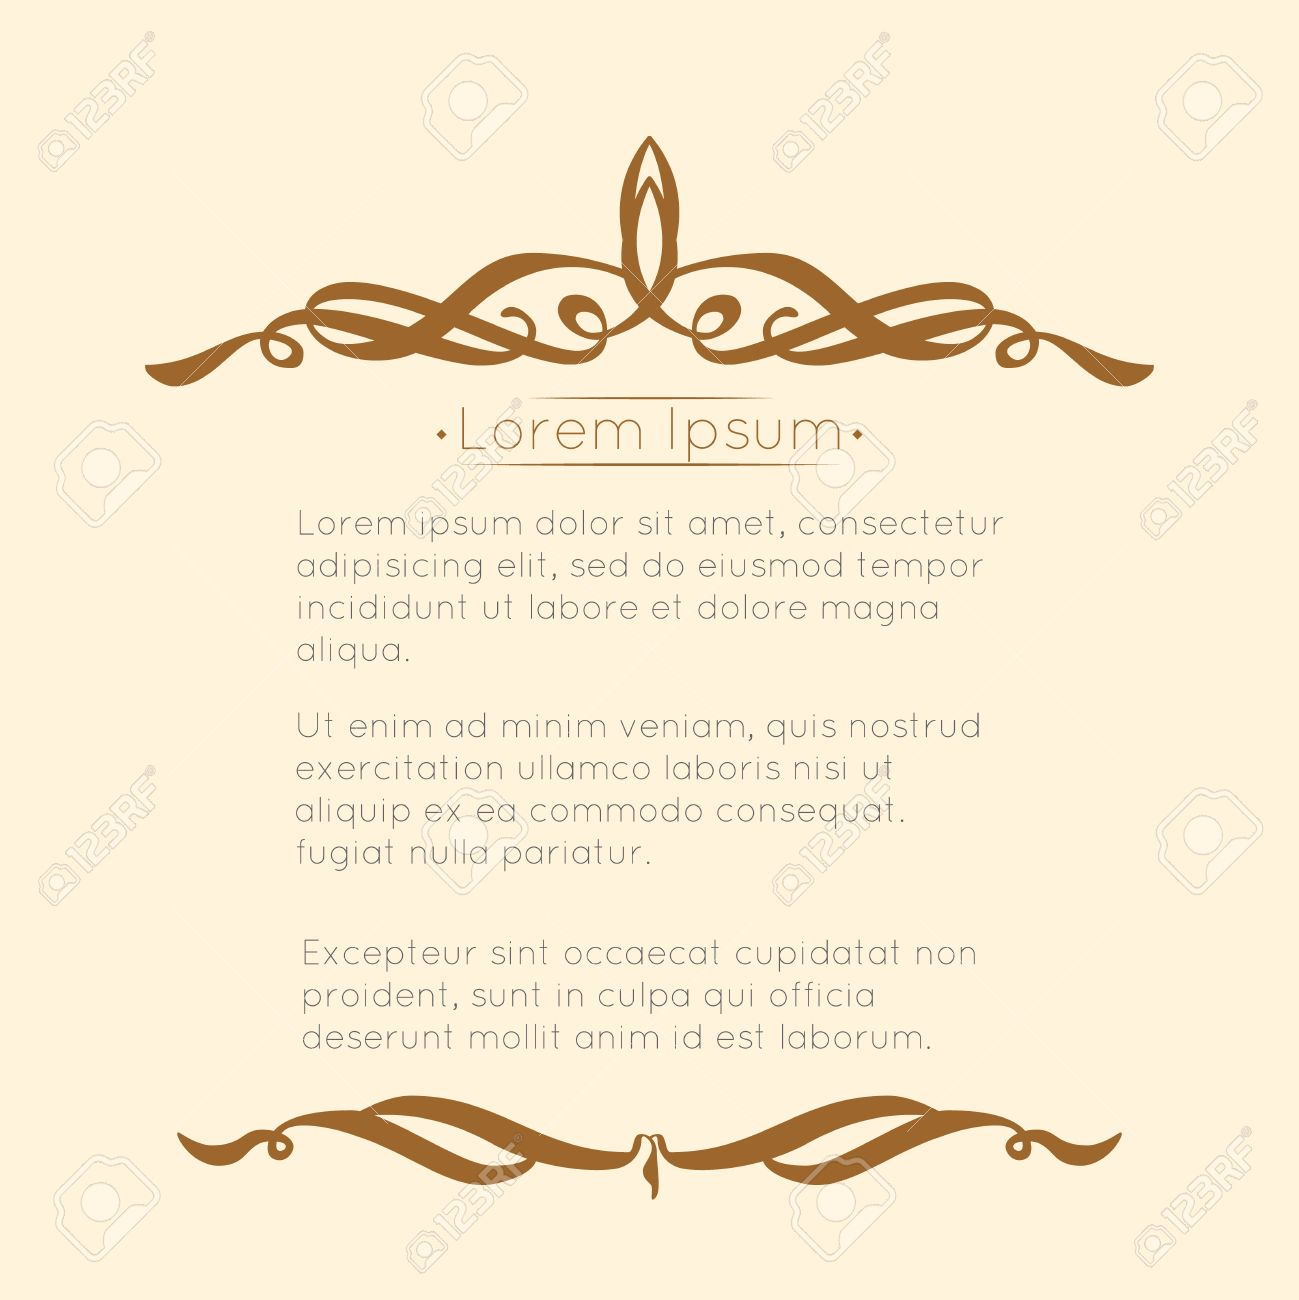 Wedding Invitation Border Templates Image Collections Party Invitations Designs Gallery Ideas